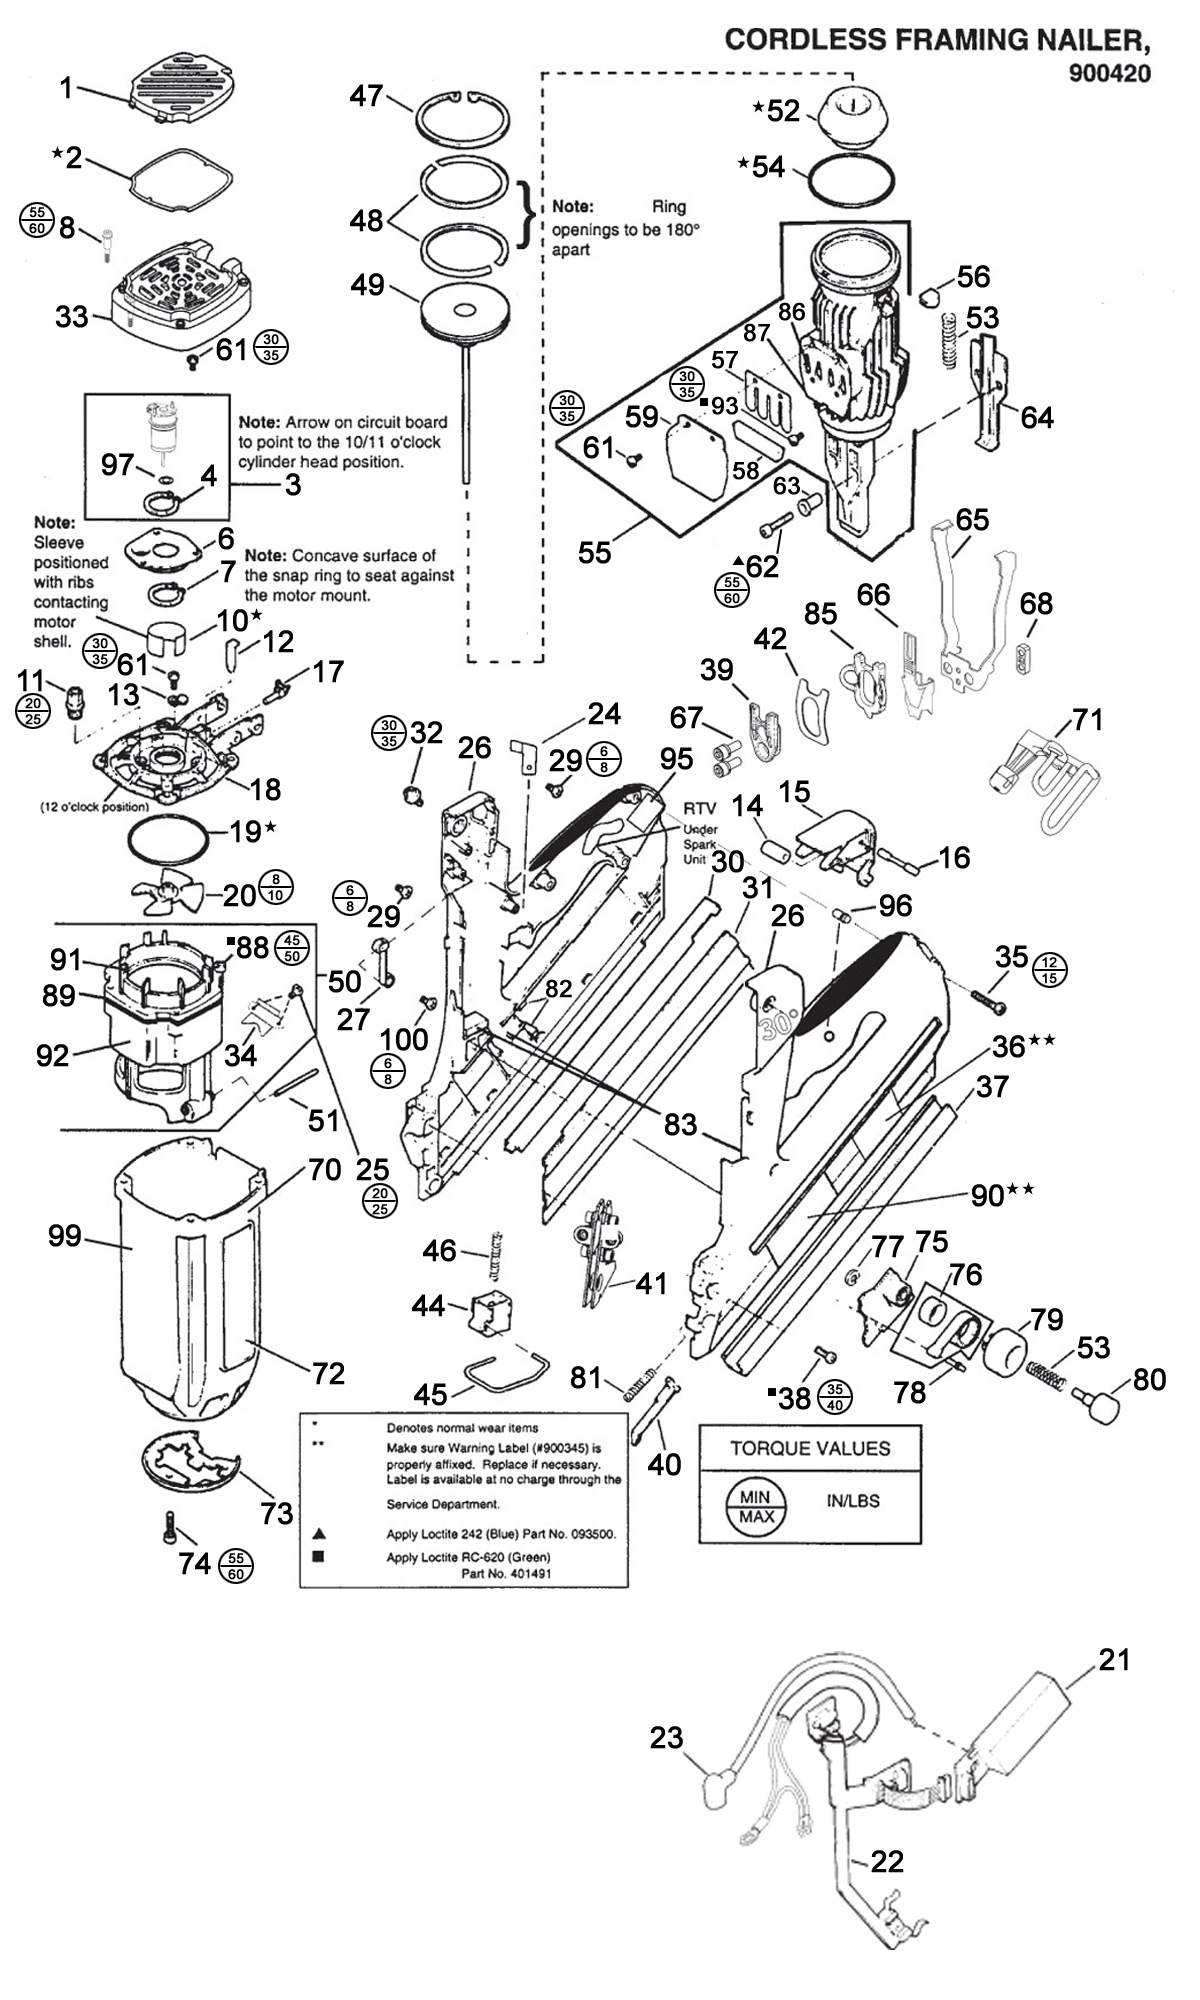 Paslode Parts Schematics Pictures To Pin